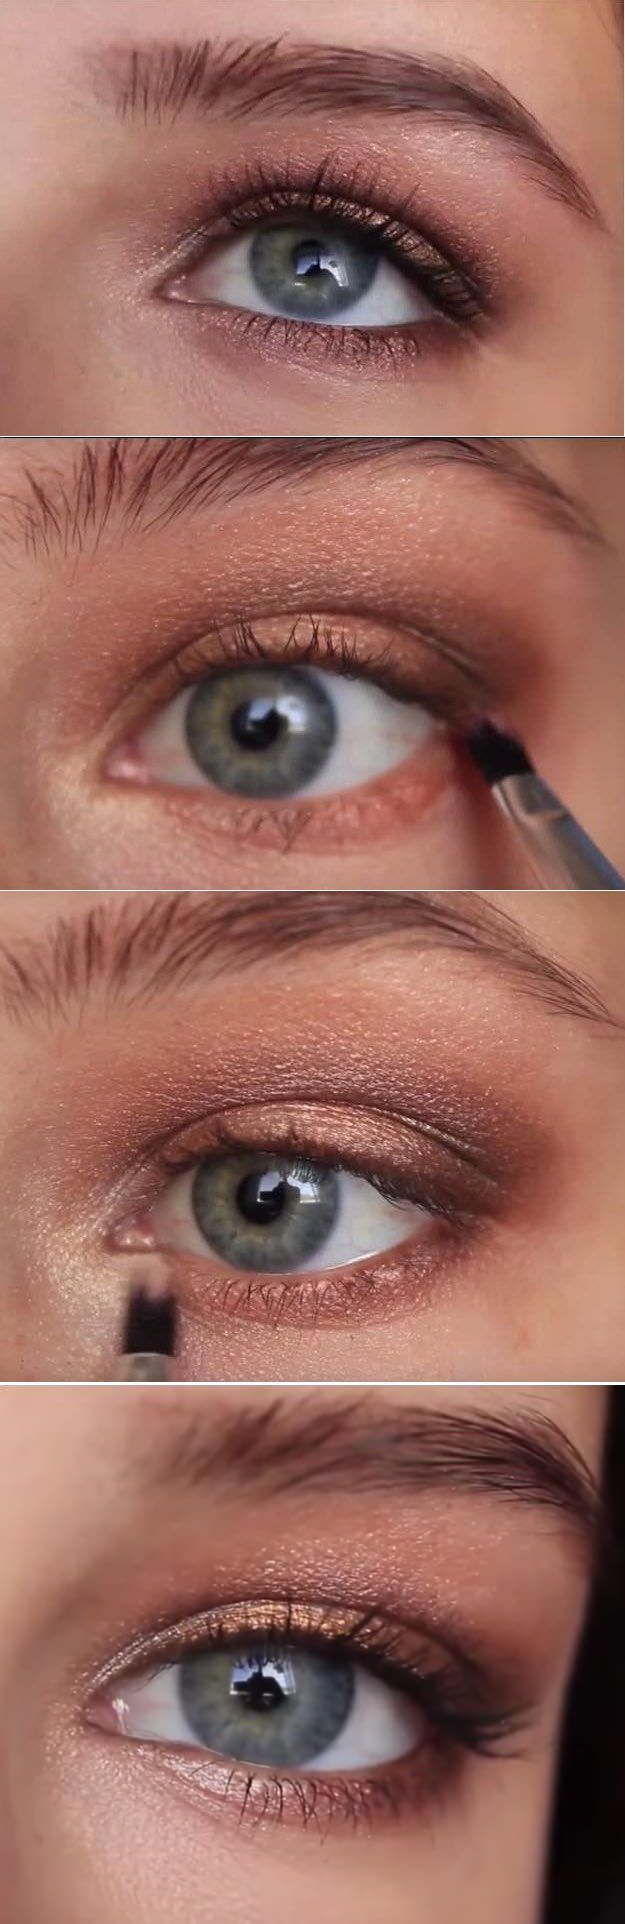 Makeup Tutorials For Blue Eyes Makeup For Blue Eyes A Full Face